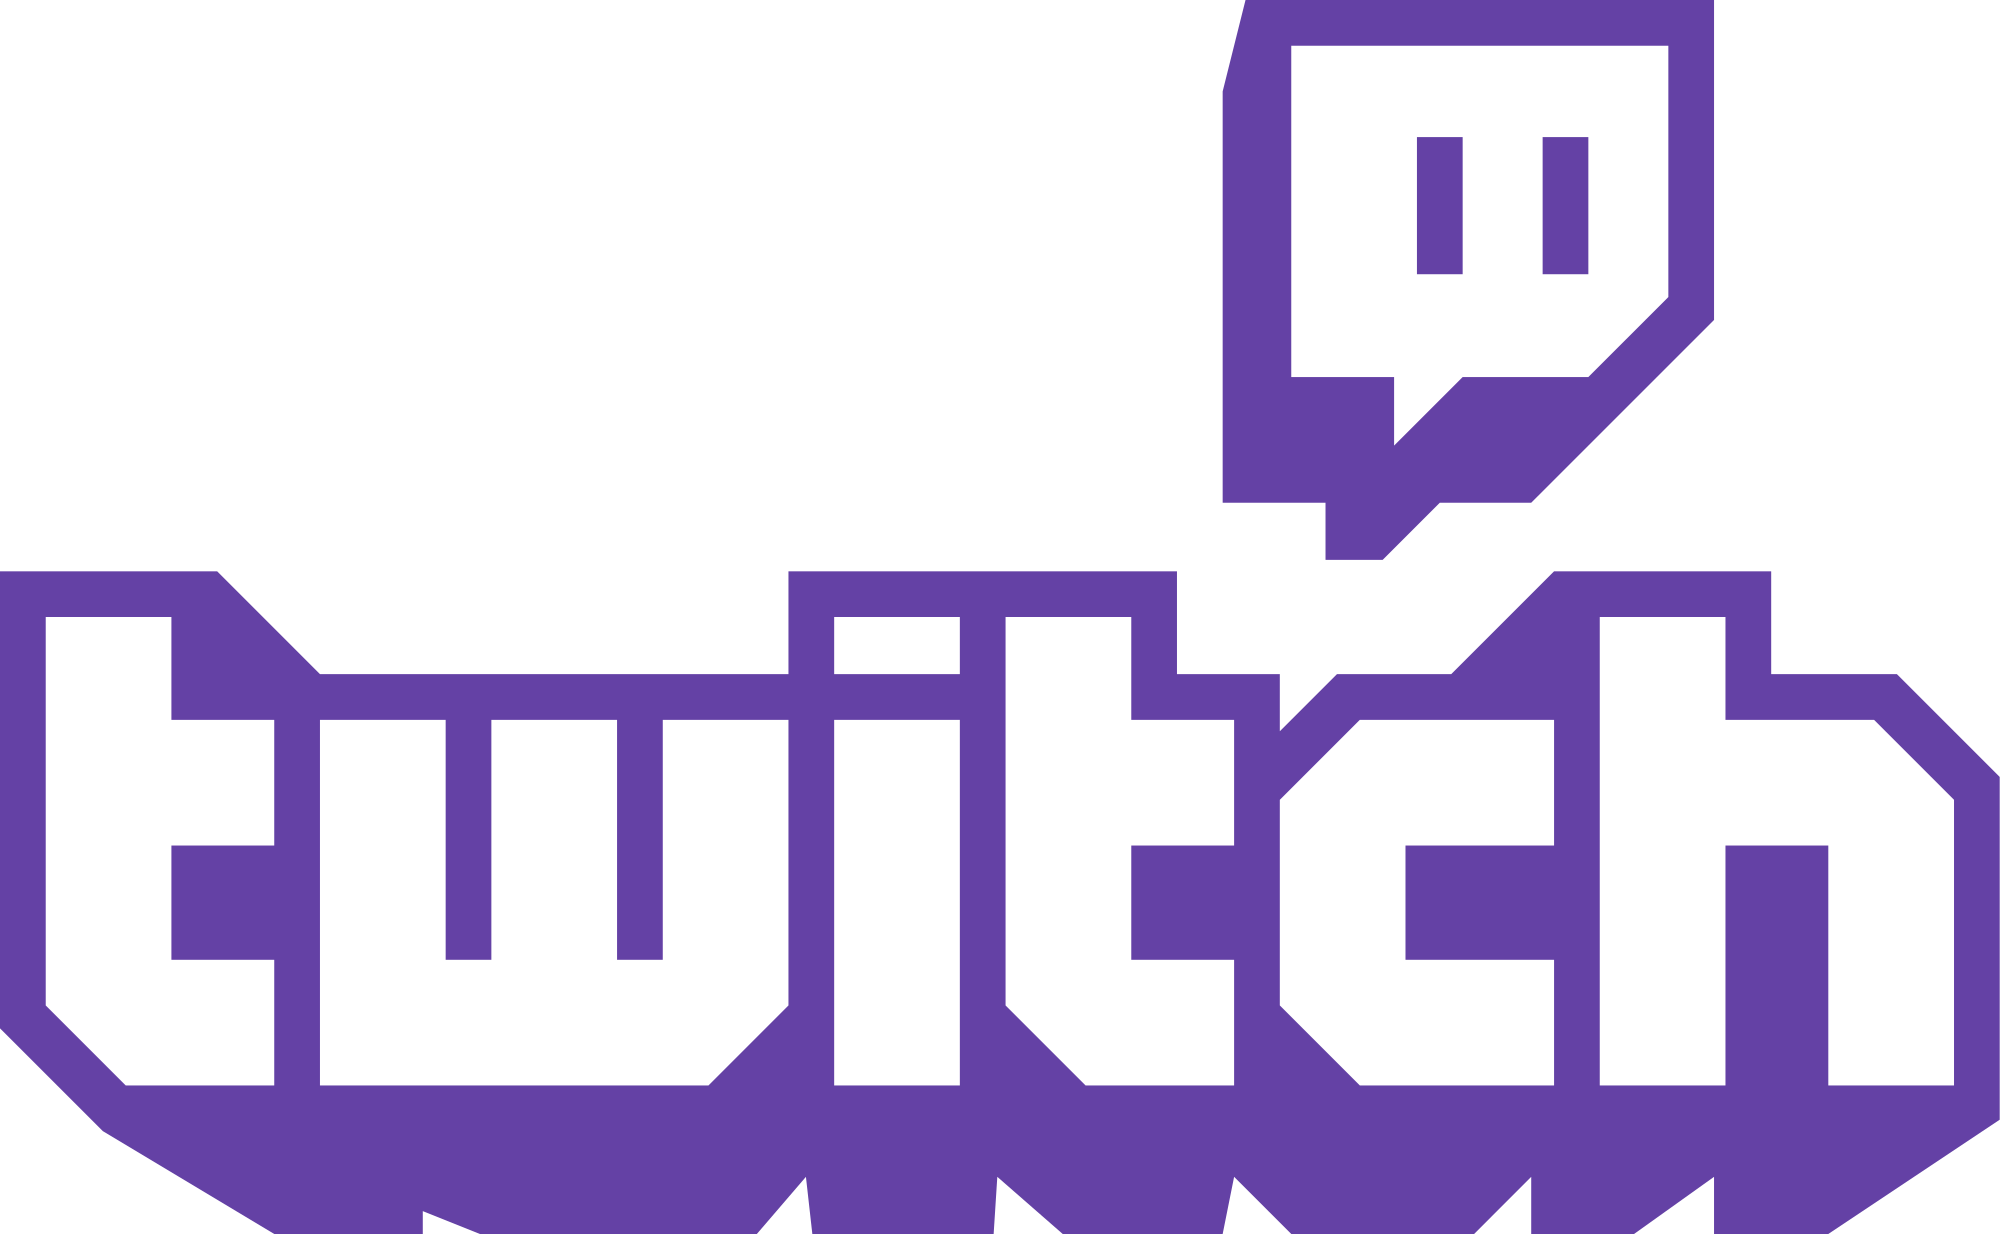 Twitch text Logos Vector Png